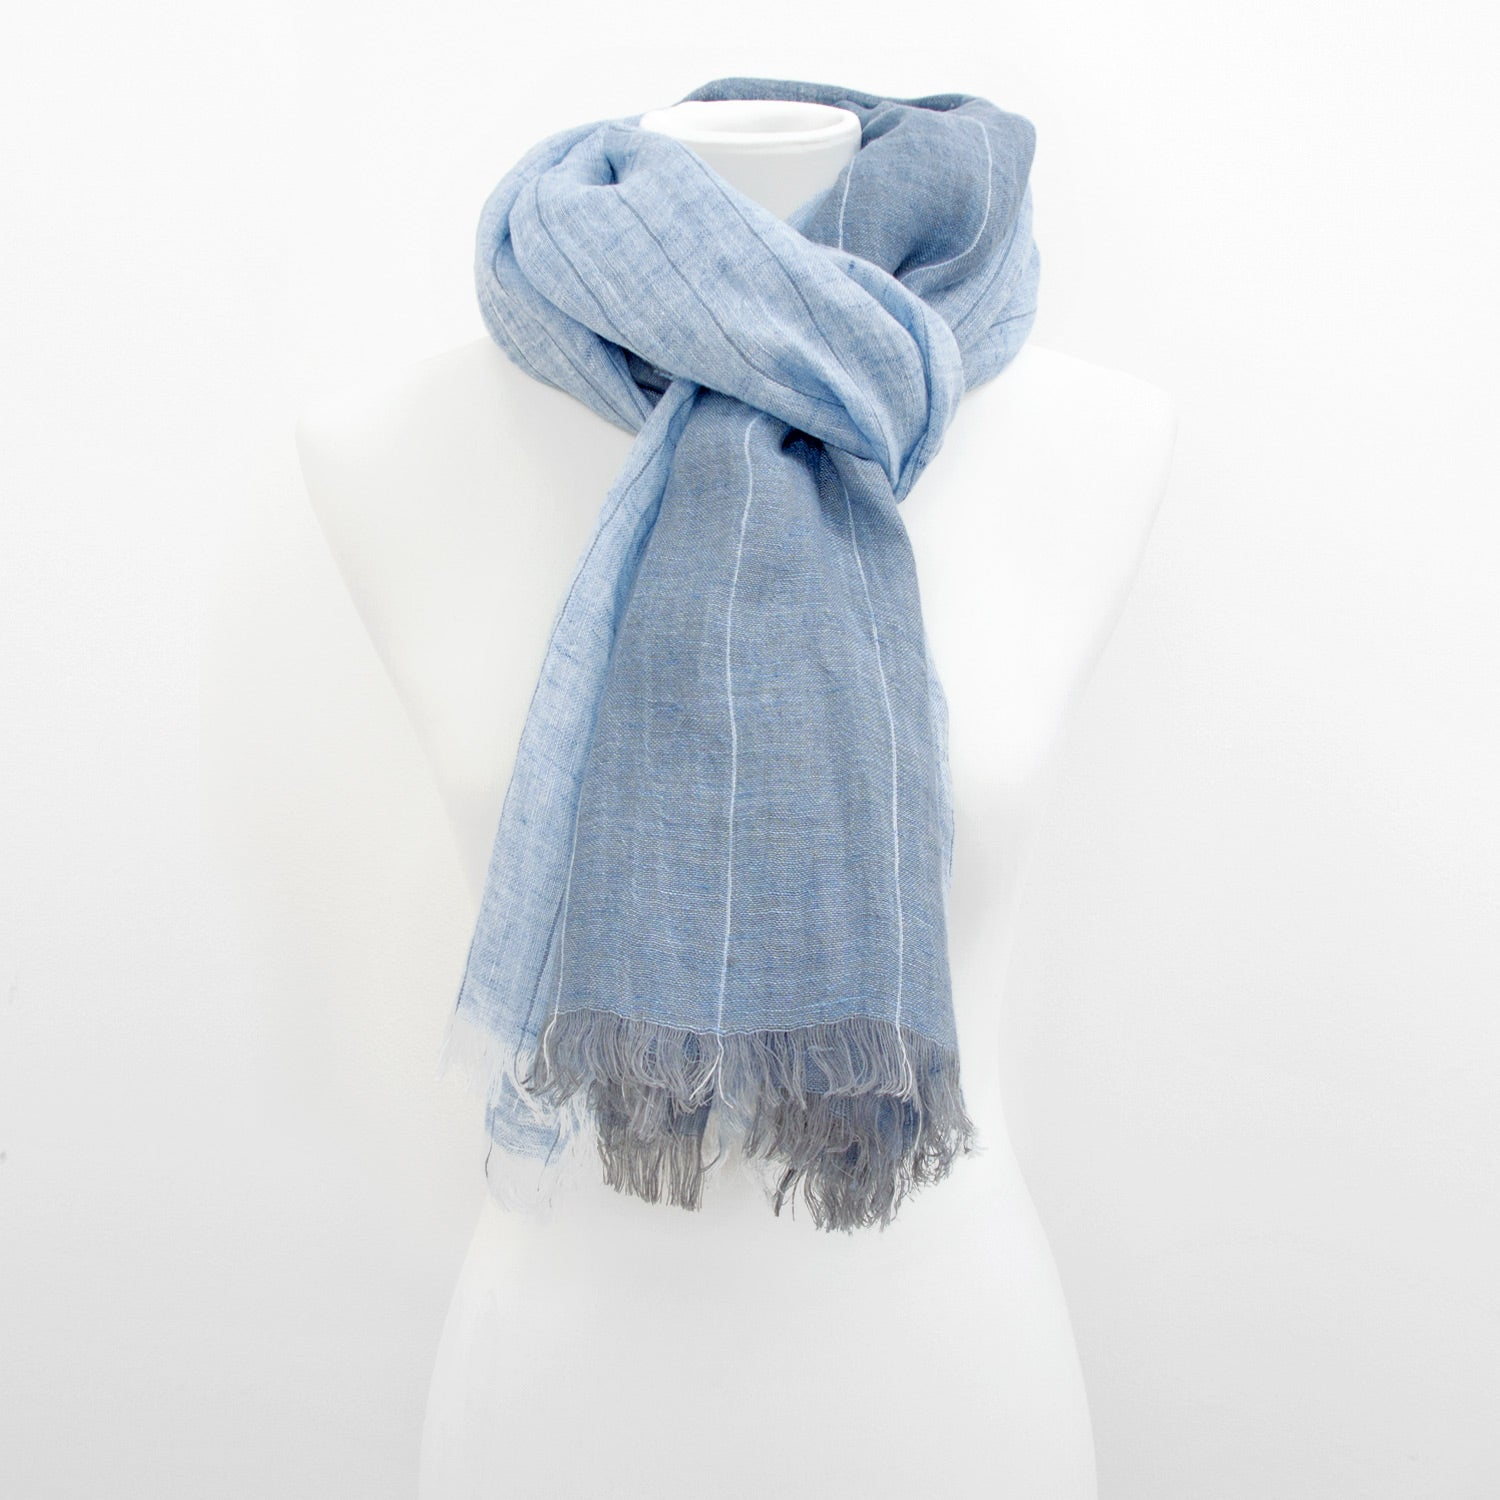 Doria & Dojola Pin Stripes Linen Shawl. 100% Linen 75 cm x 200 cm. Made in Italy. Pictured in Light Blue.